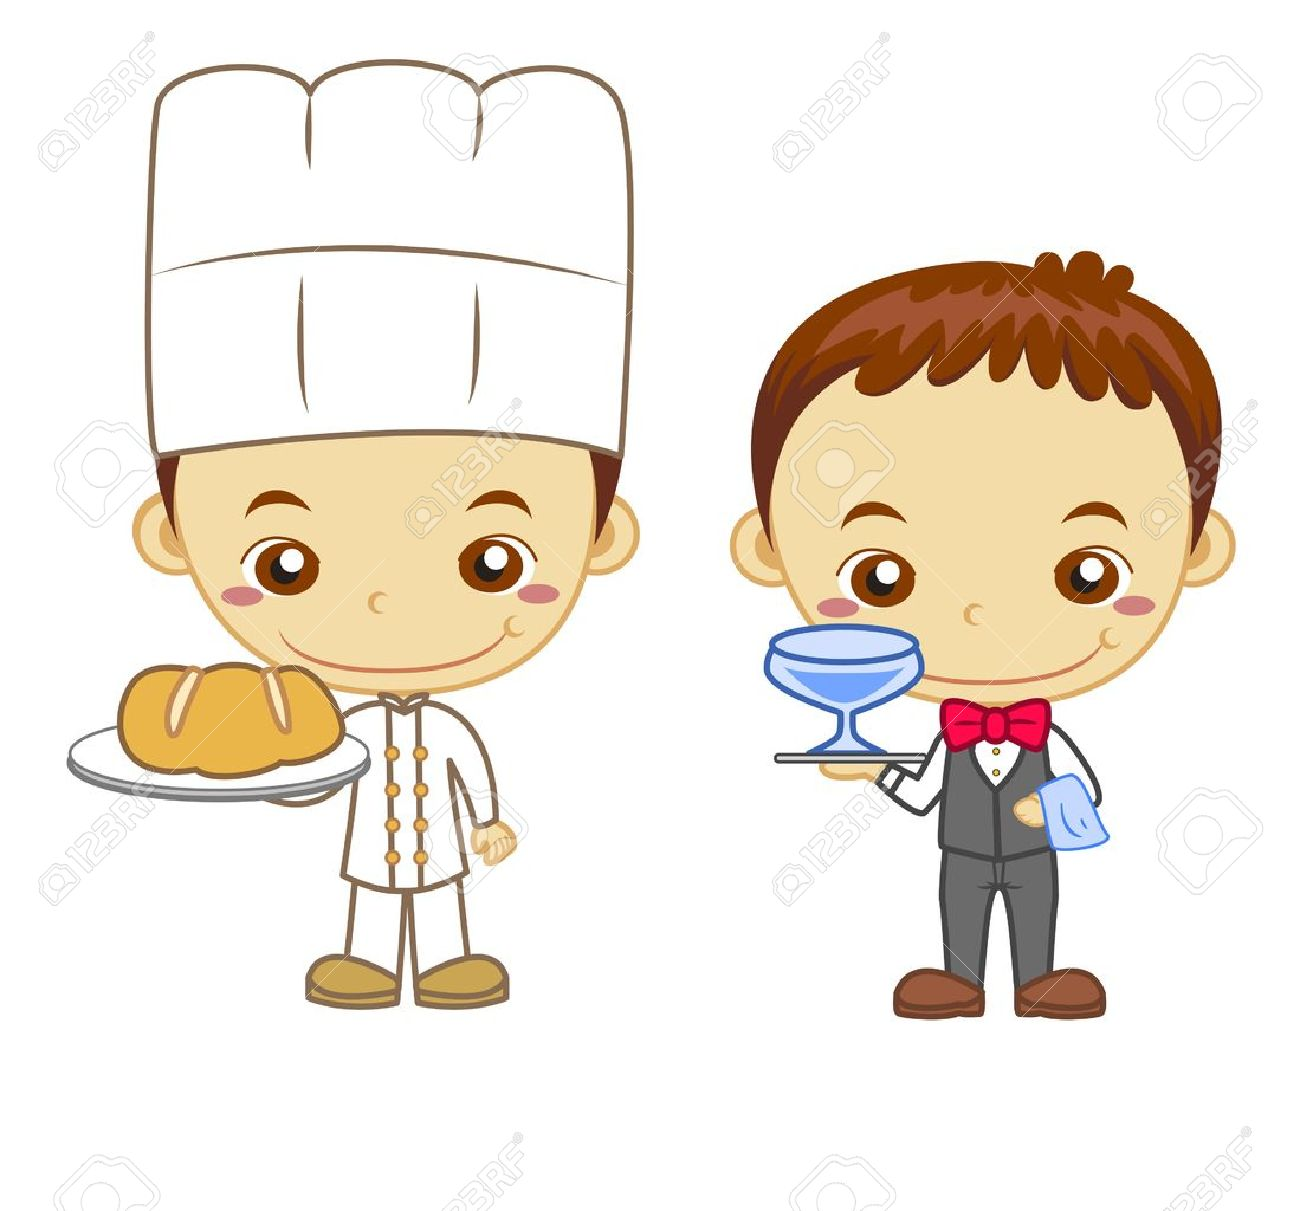 A waiter and a baker isolated on white background  Kids and Jobs series Stock Vector - 14721827